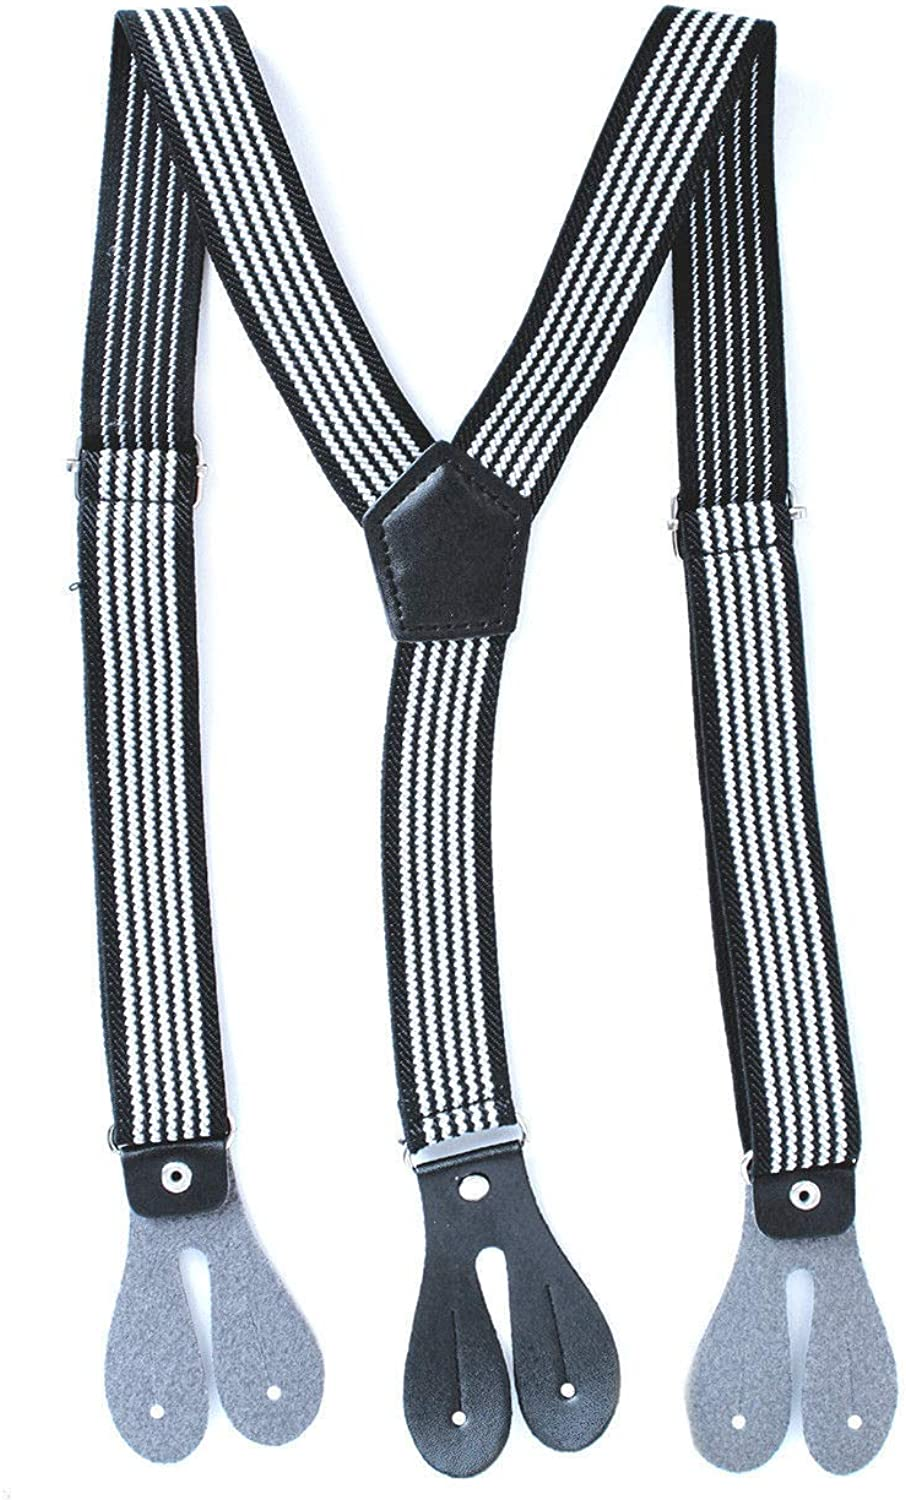 Parties Denims Trimming Shop Kids 25mm Wide Button Hole Suspenders Y Shape Elasticated Braces for Trousers 28 Long, Beige with Black /& White Stripe